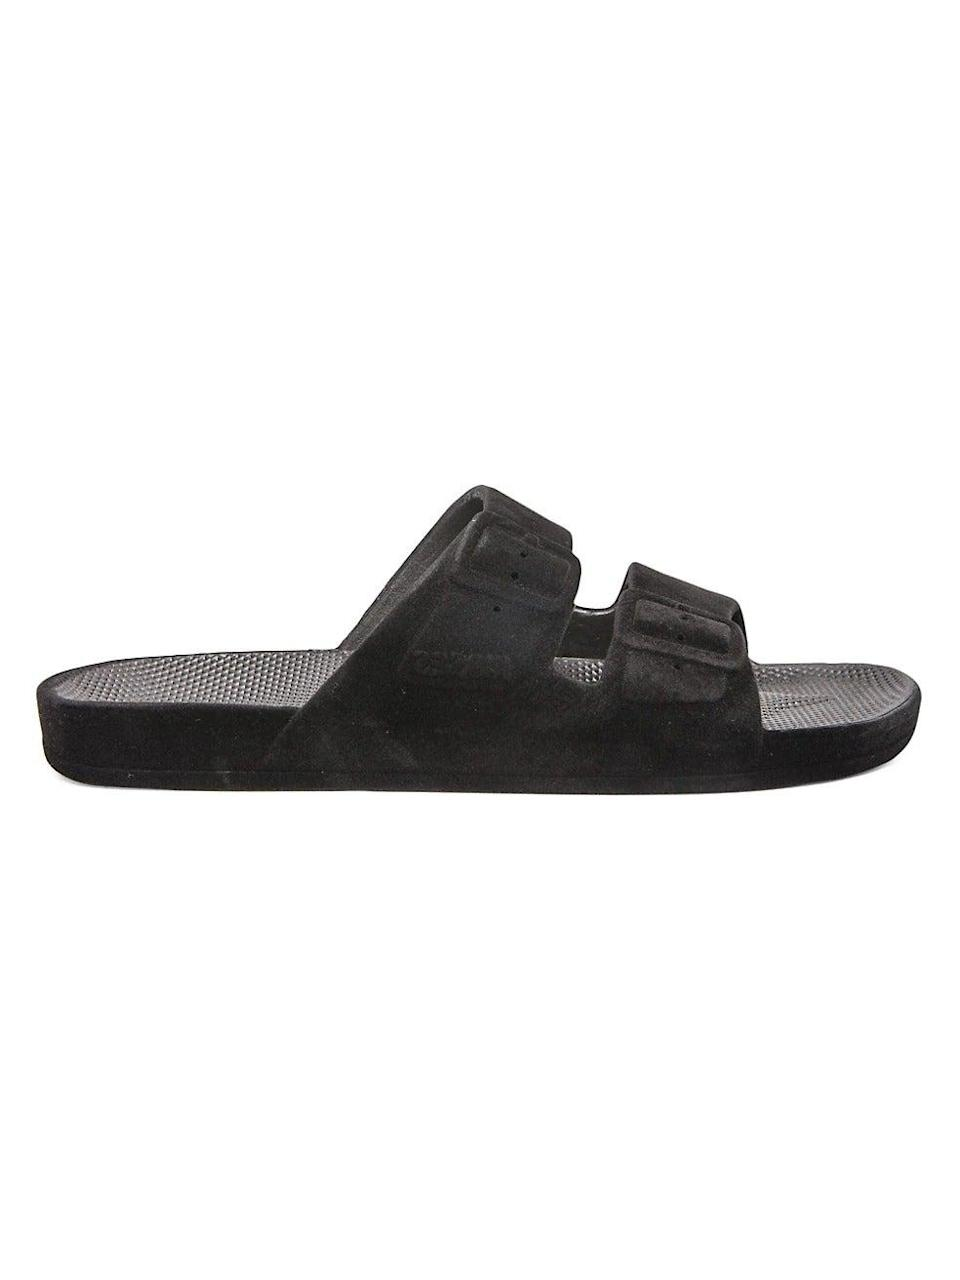 """<br><br><strong>Freedom Moses</strong> Bond Velvet Two-Strap Slides, $, available at <a href=""""https://www.saksfifthavenue.com/product/freedom-moses-bond-velvet-two-strap-slides-0400013270940.html?ranMID=37410&ranEAID=0RpXOIXA500&ranSiteID=0RpXOIXA500-Dpw1GFbiYMuOvFjheQt78Q&site_refer=AFF001&mid=37410&siteID=0RpXOIXA500-Dpw1GFbiYMuOvFjheQt78Q"""" rel=""""nofollow noopener"""" target=""""_blank"""" data-ylk=""""slk:Saks Fifth Avenue"""" class=""""link rapid-noclick-resp"""">Saks Fifth Avenue</a>"""